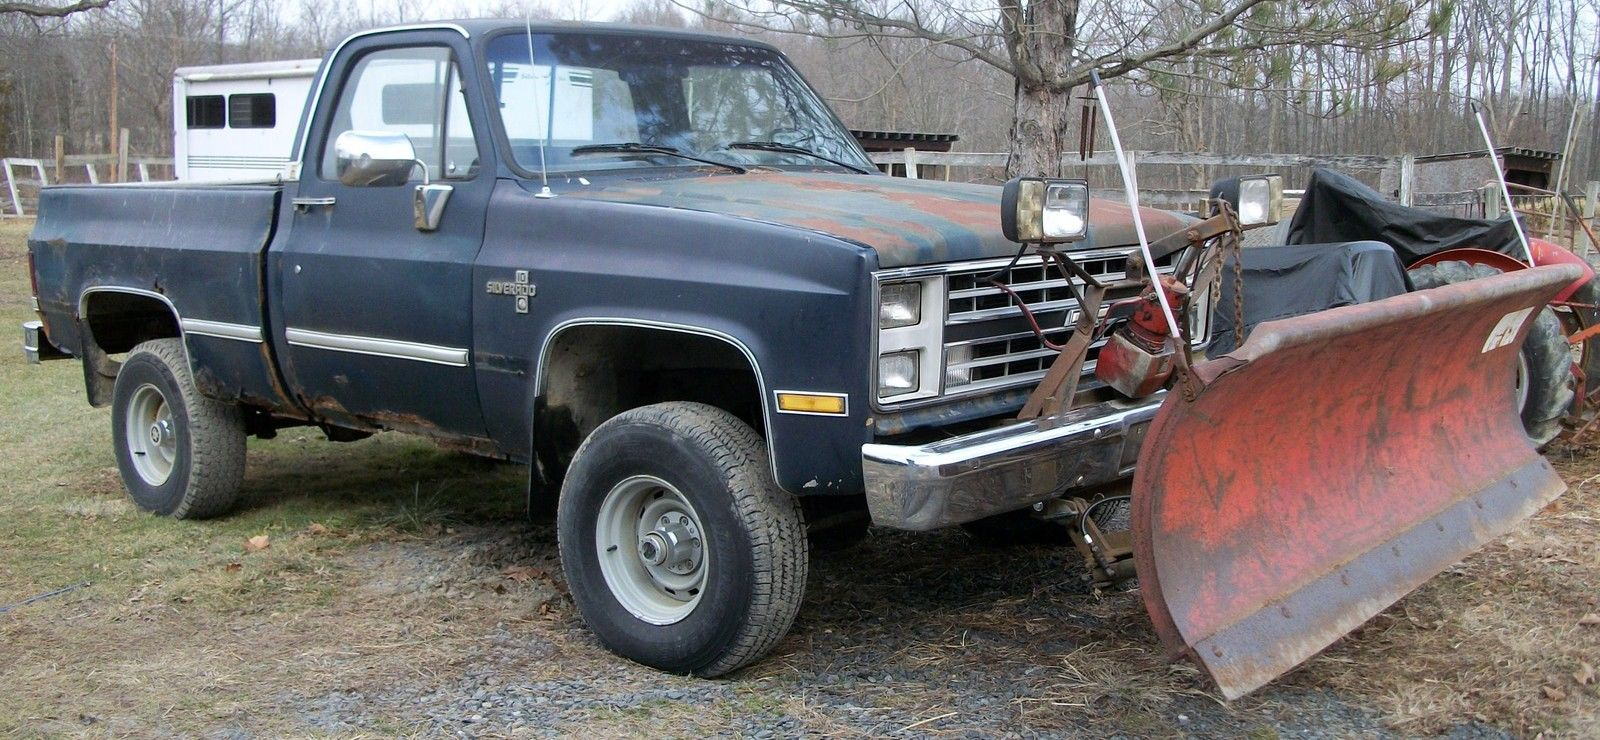 1987 Chevrolet Silverado 10 4wd Pick Up Truck With Western